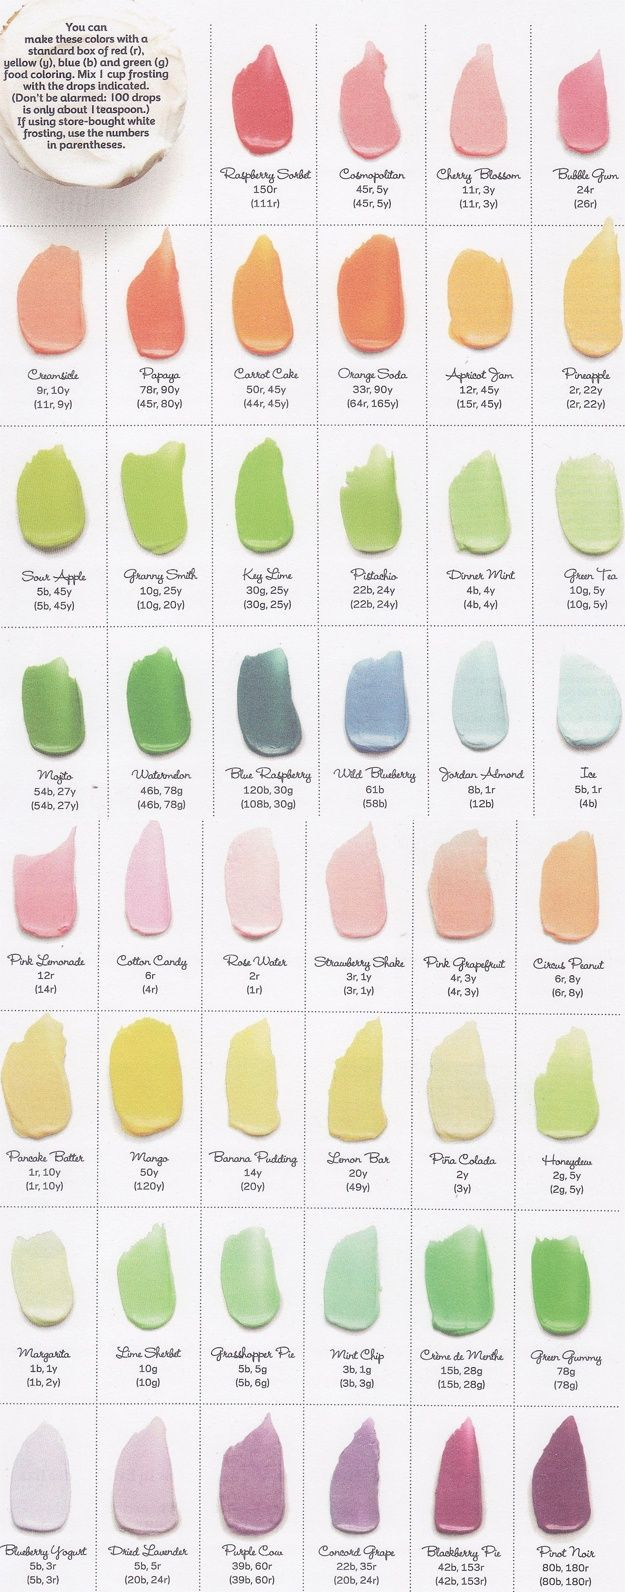 Food Network Frosting Color Chart ~ Tells you how many drops of each color (red, blue, yellow or green) you need to achieve the icing shade you want!